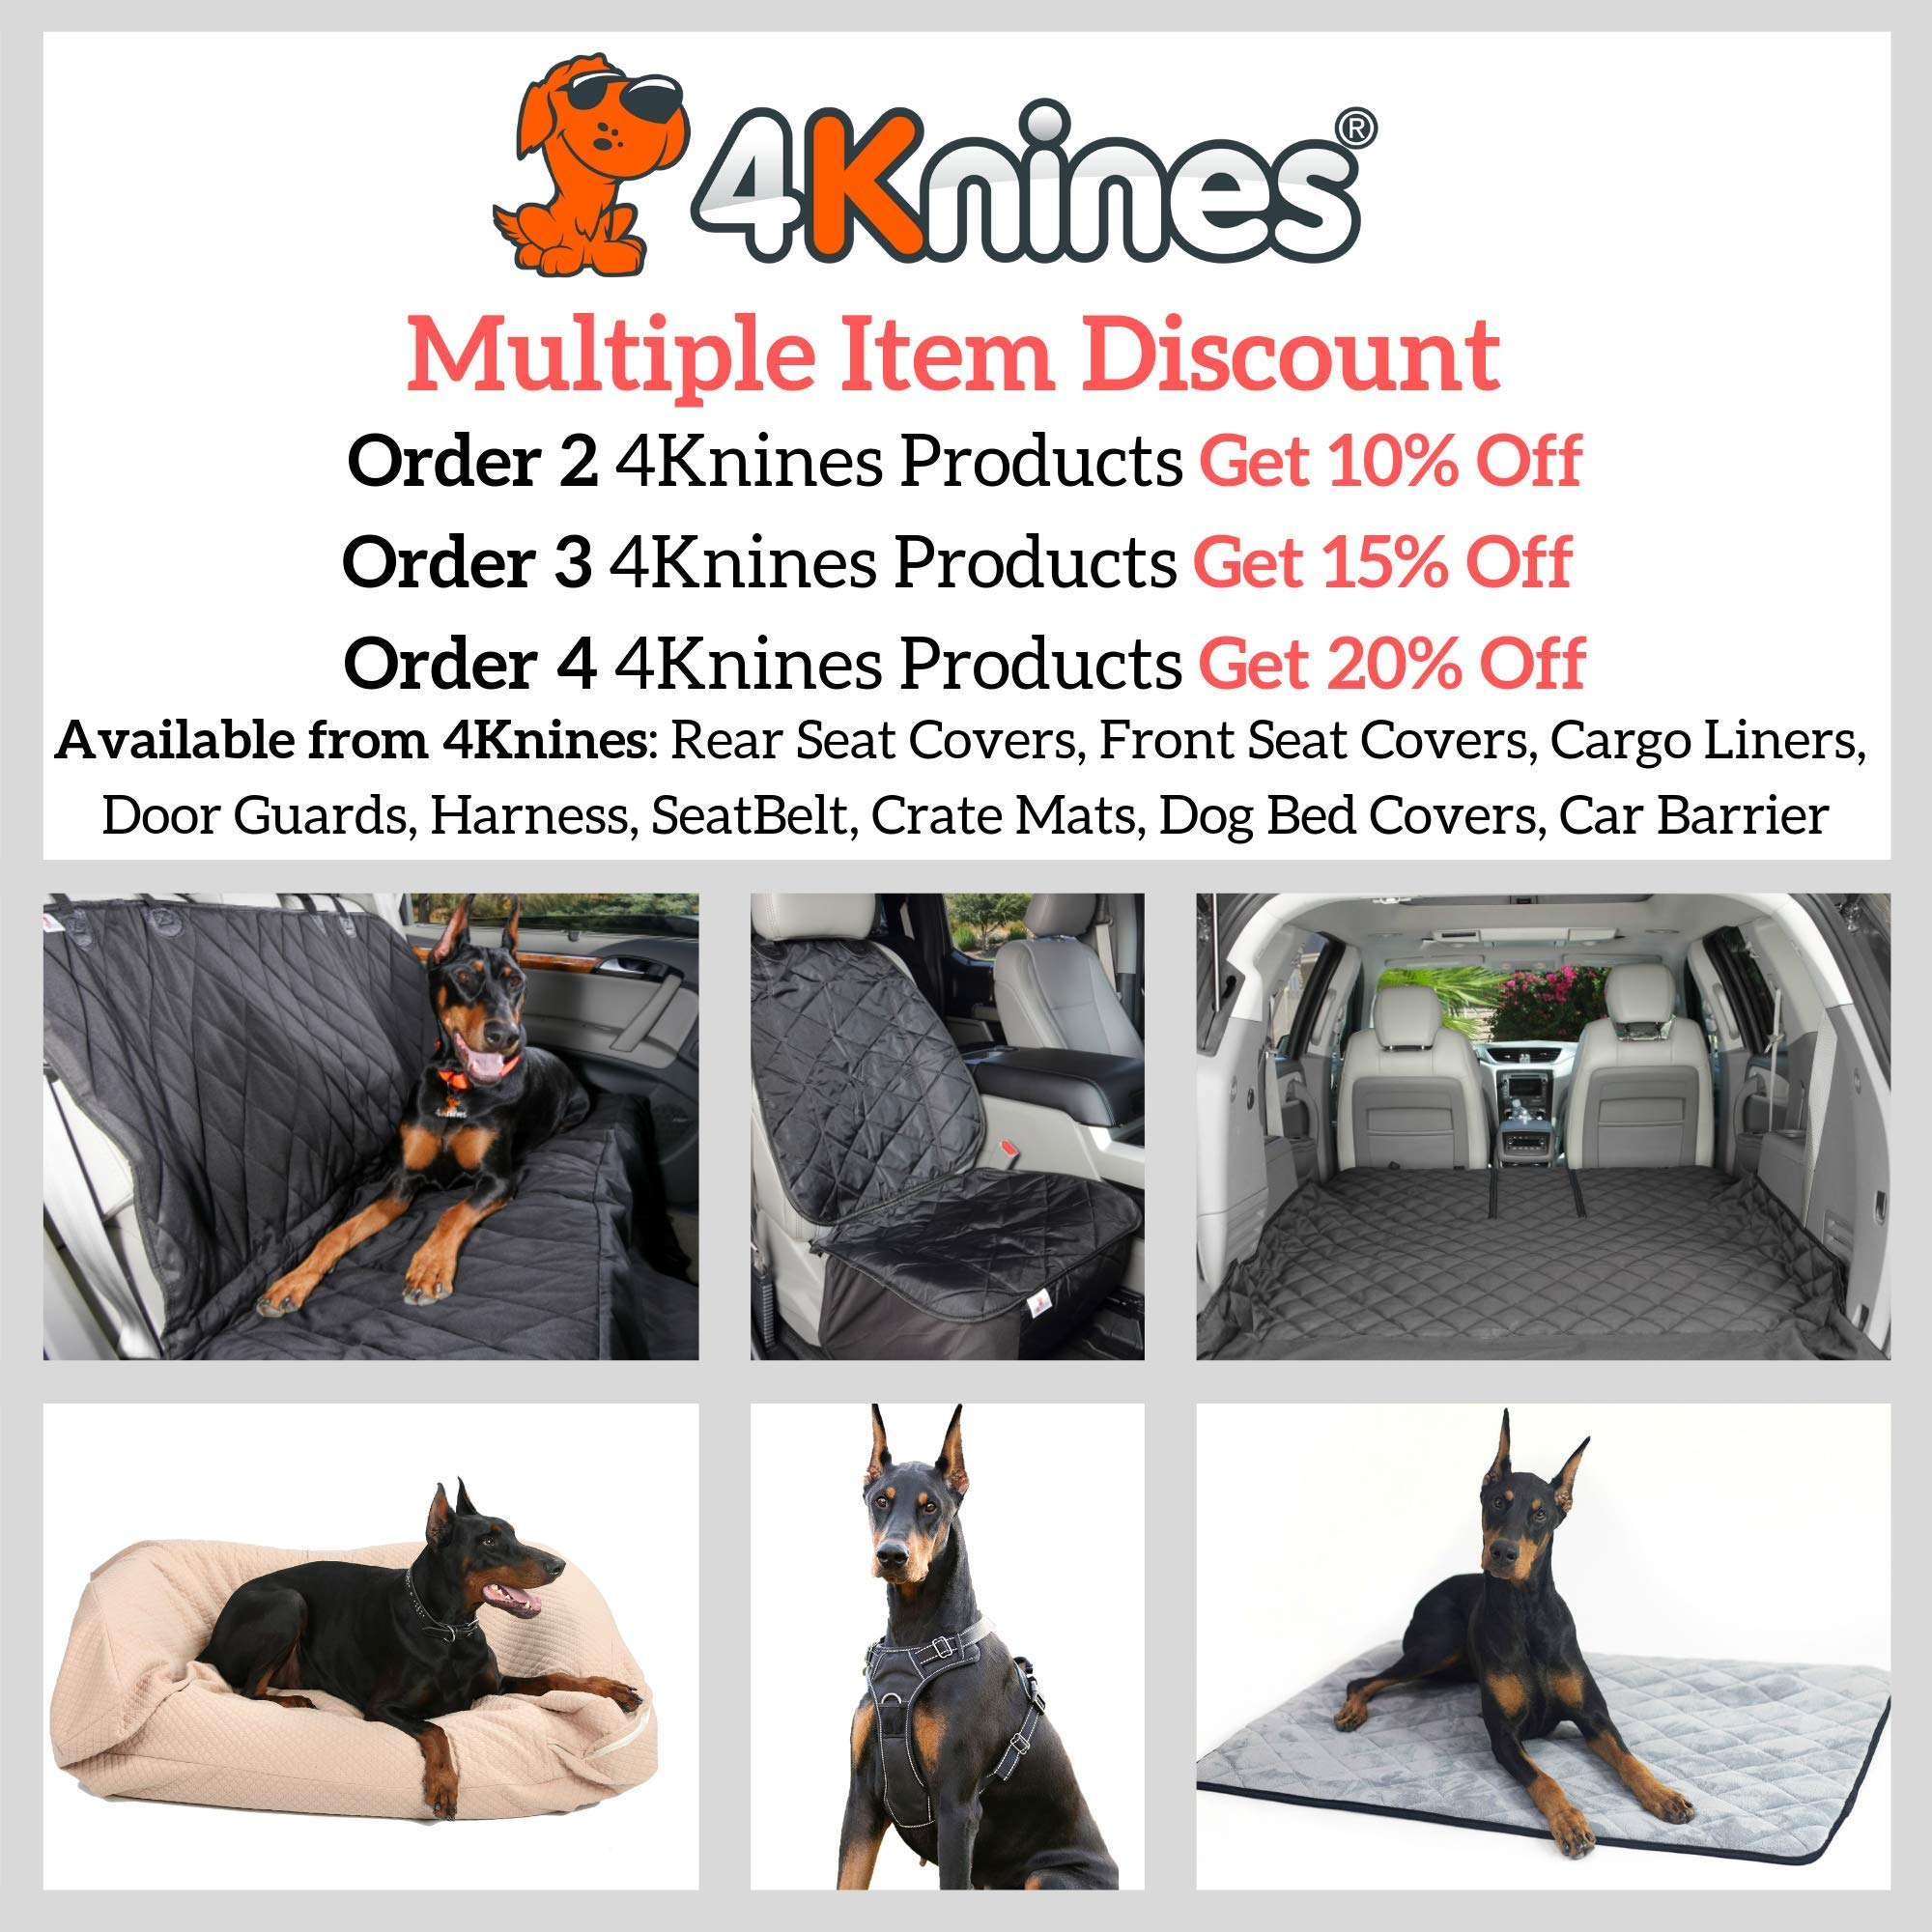 4Knines Dog Seat Cover with Hammock for Full Size Trucks and Large SUVs - Black Extra Large - USA Based Company by 4Knines (Image #6)